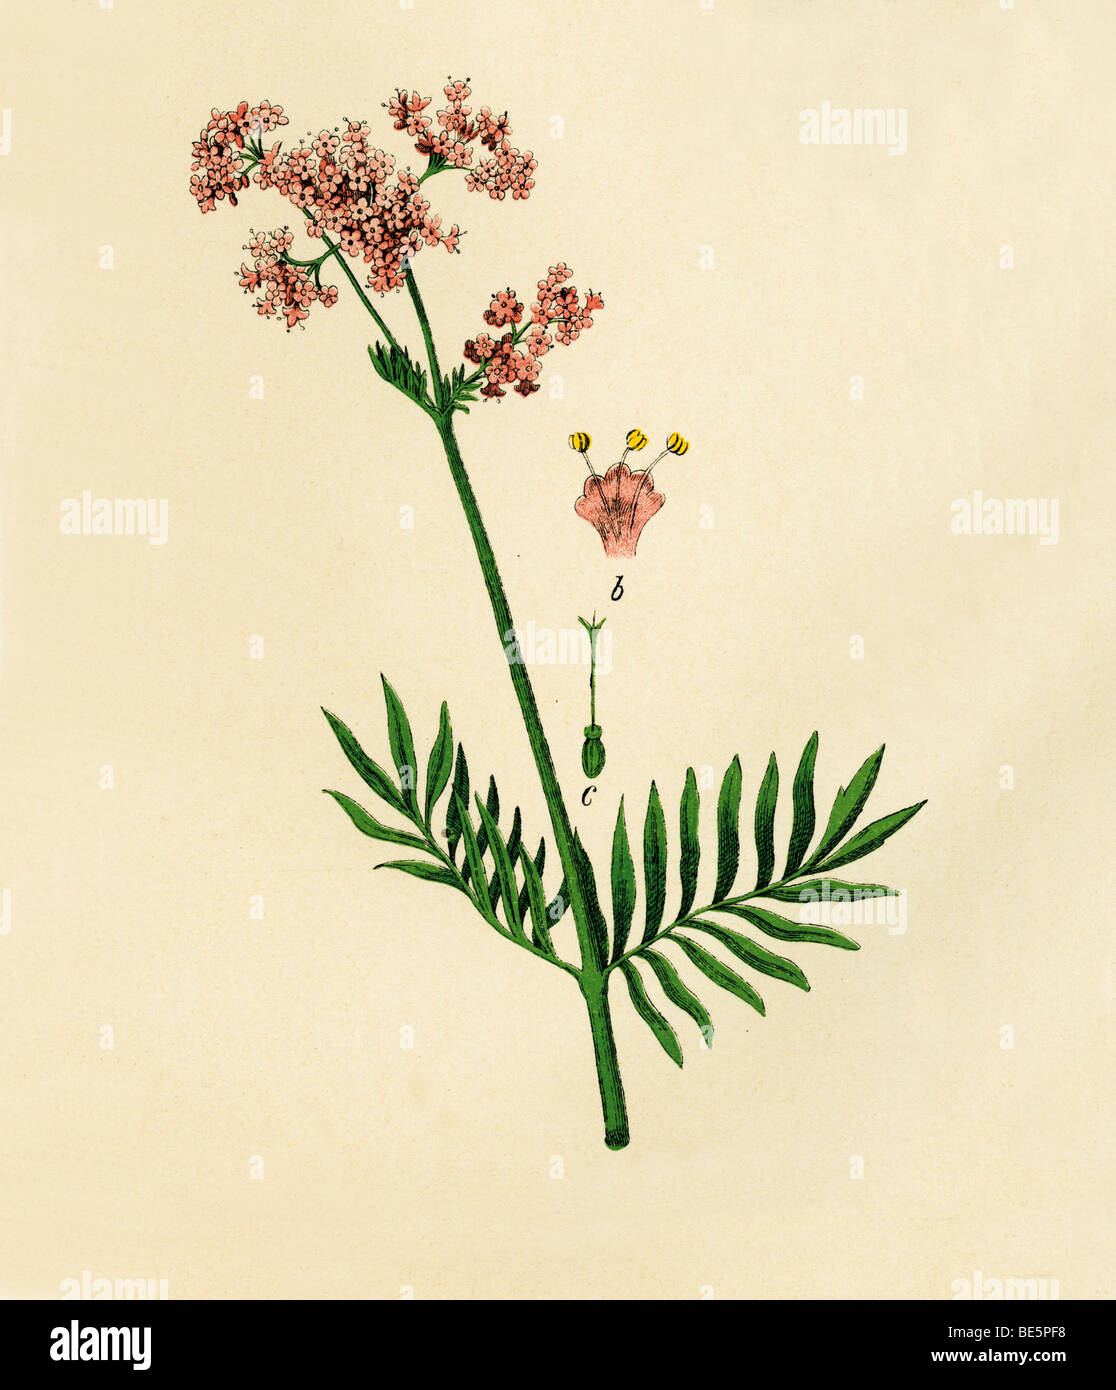 Valerian, historical illustration from: Moritz Willkomm: Naturgeschichte des Pflanzenreichs, Natural history of - Stock Image